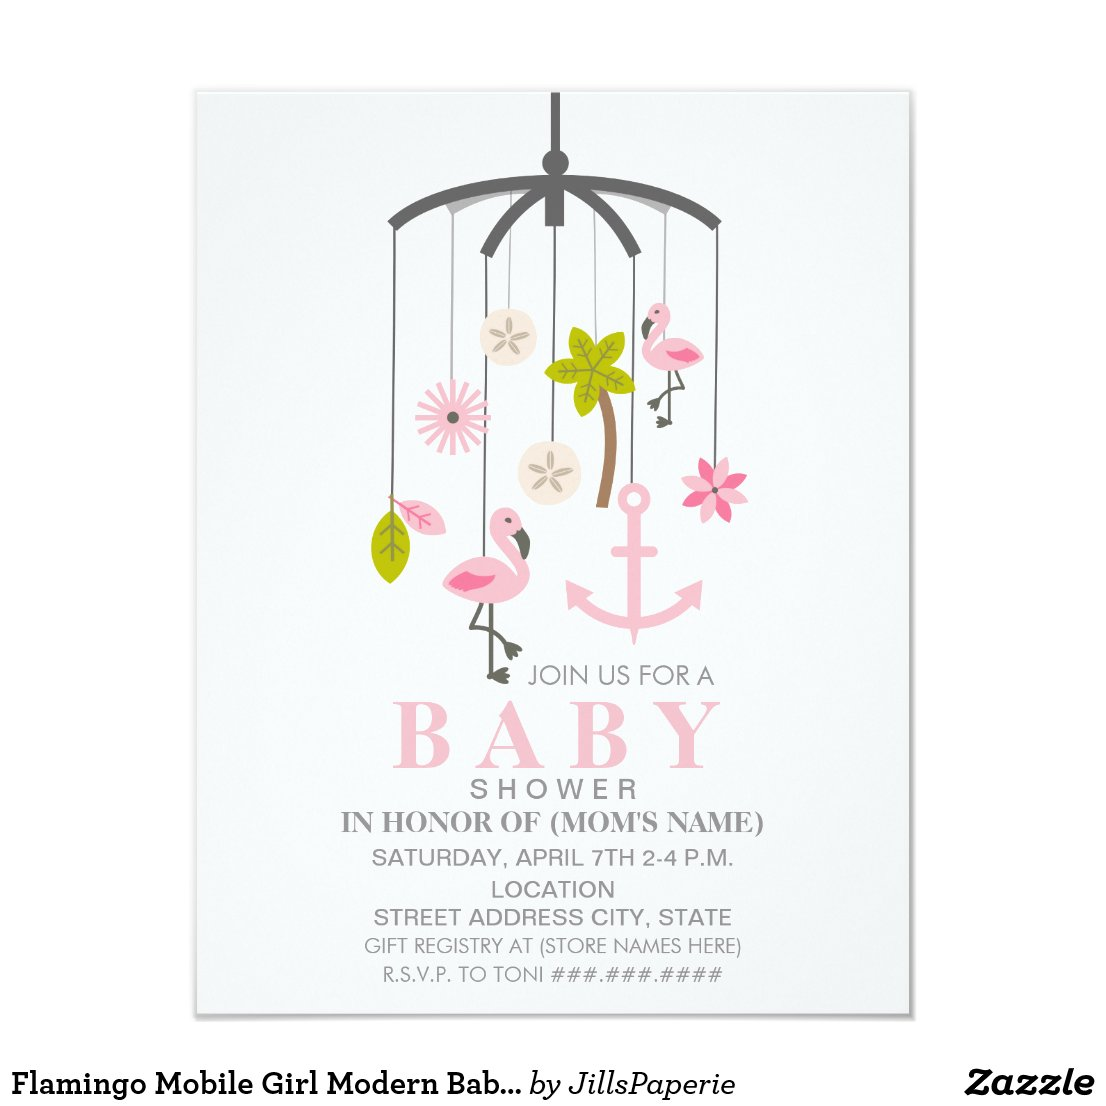 Flamingo Mobile Girl Modern Baby Shower Card